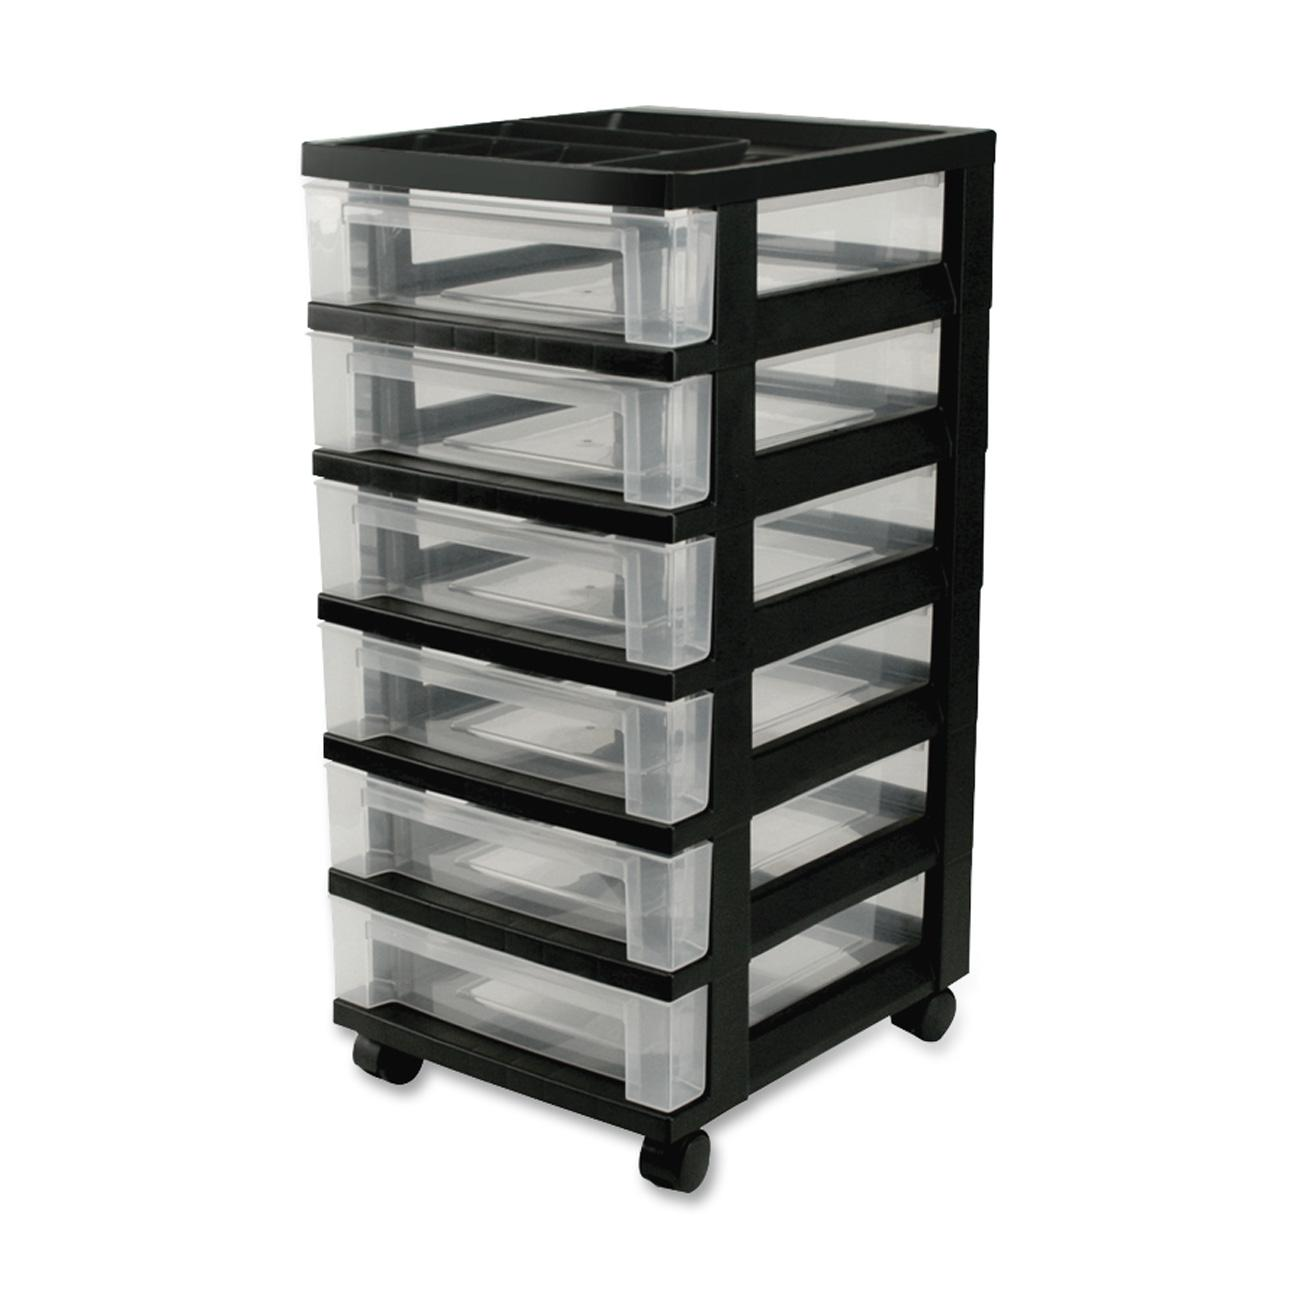 IRIS 6 Drawer Rolling Storage Cart With Organizer Top, Black